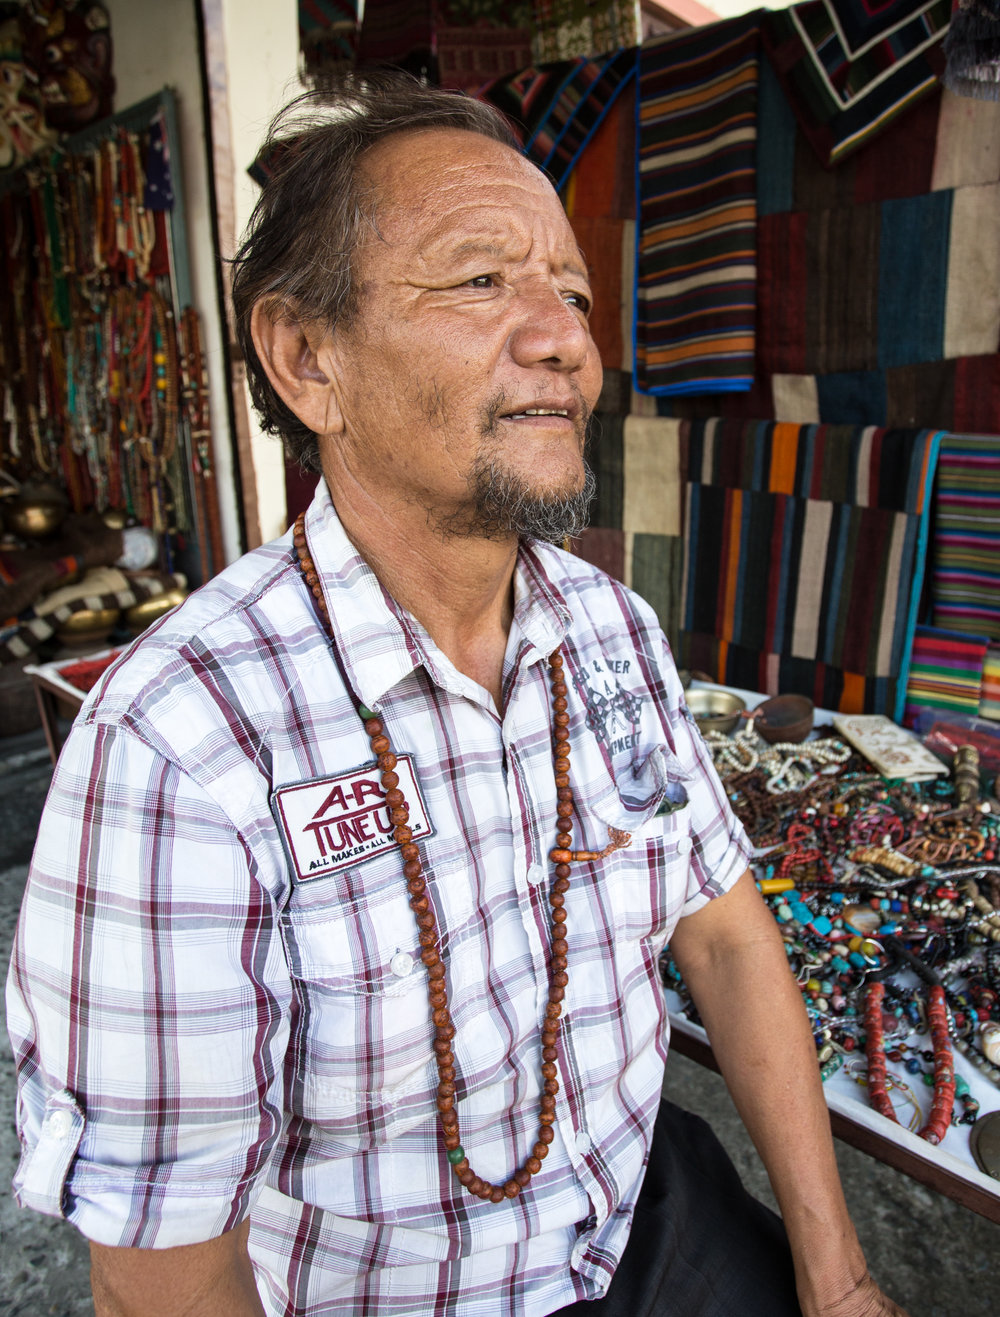 Tibetan refugee shop owner.